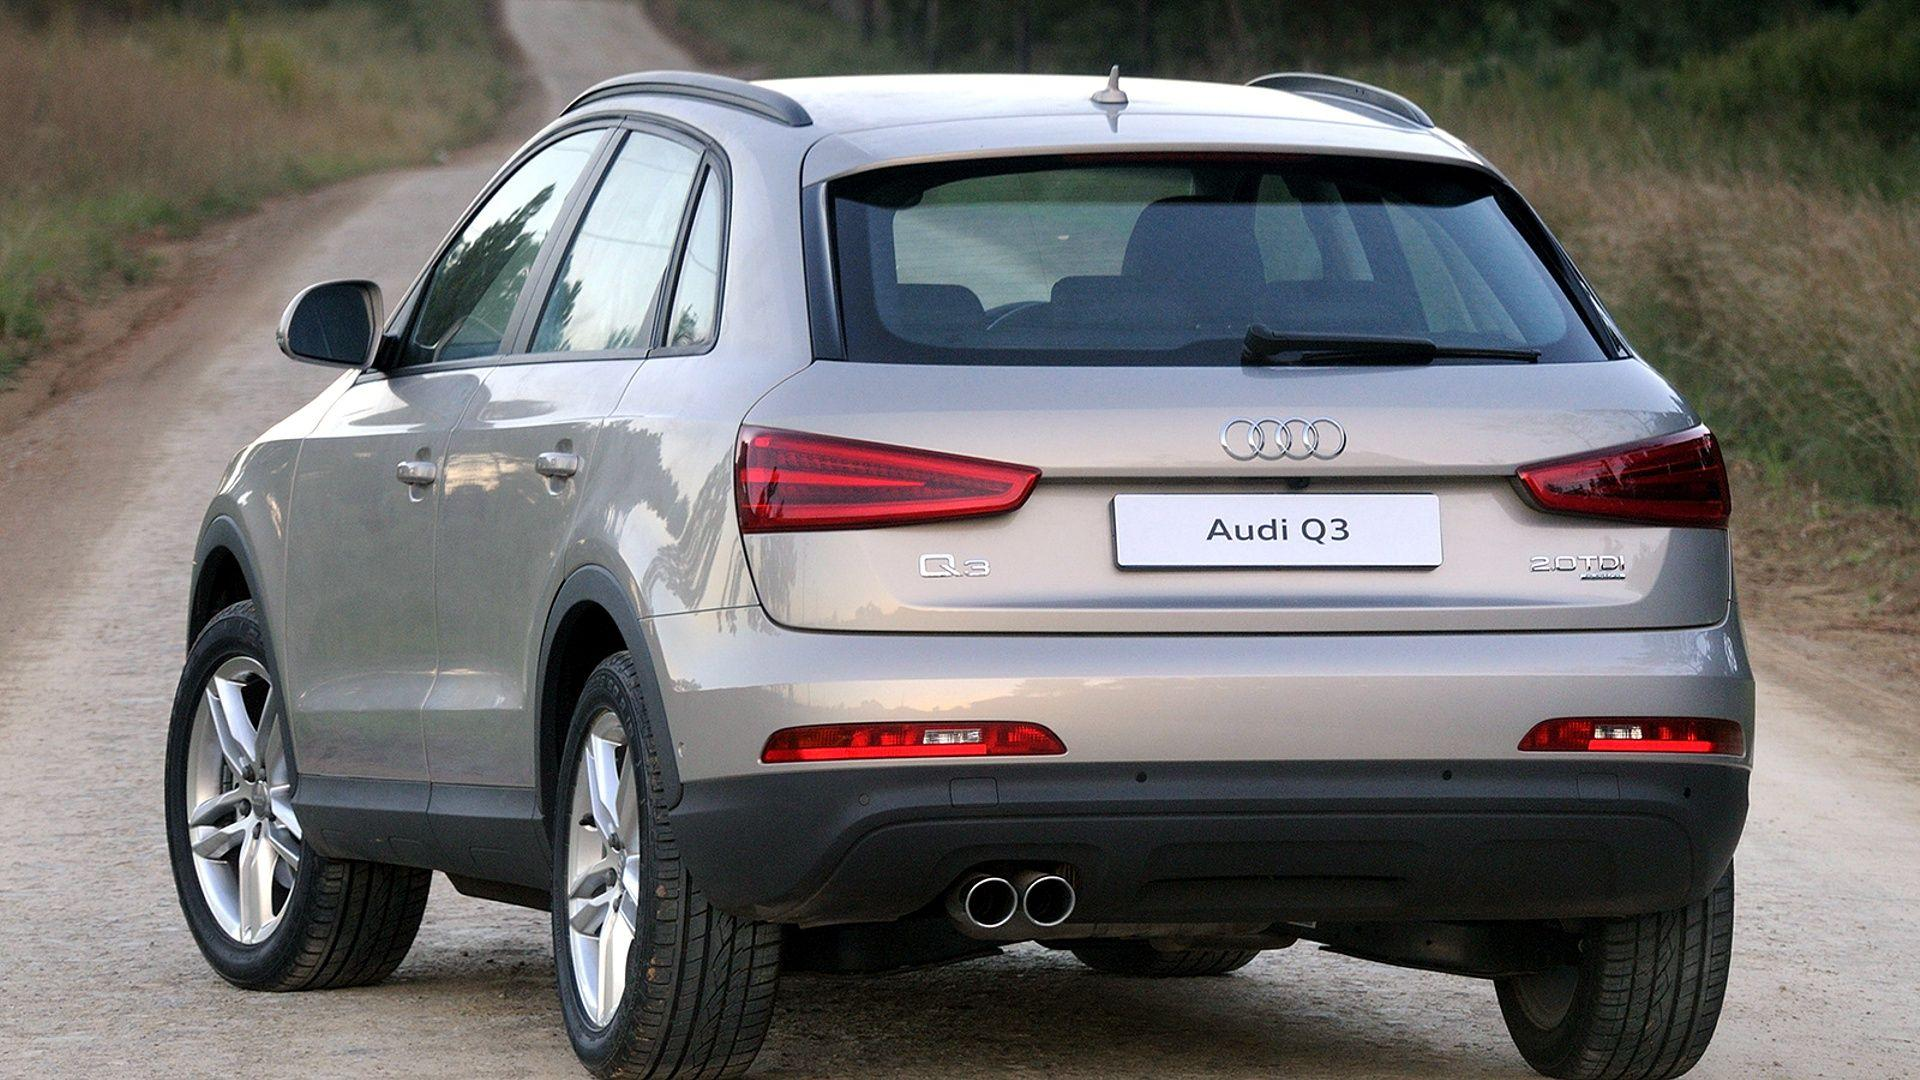 Audi HD Wallpapers backgrounds free. Audi cars pictures on